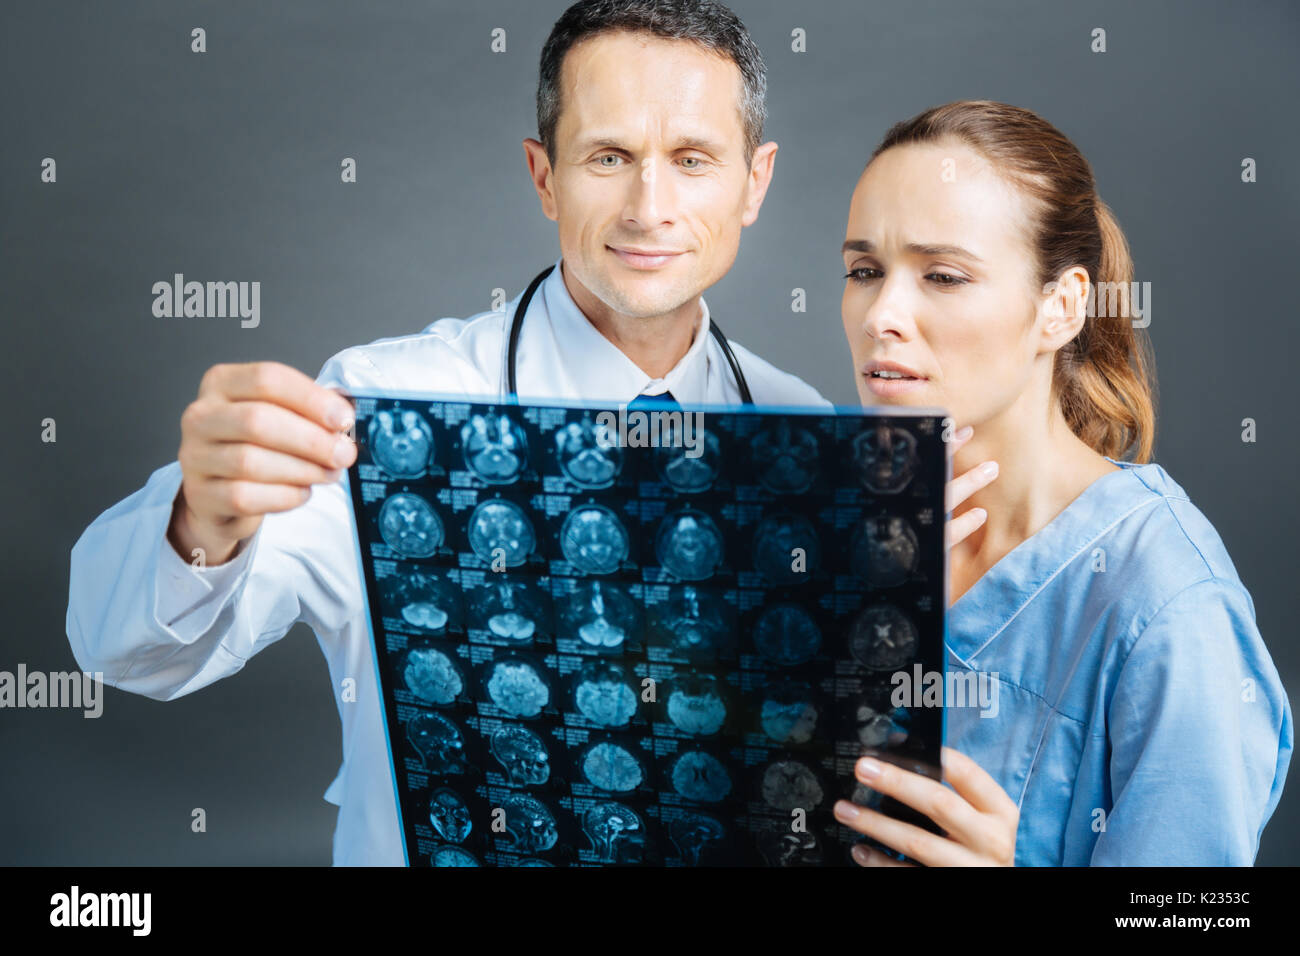 Medical professionals counseling over patient diagnosis together - Stock Image